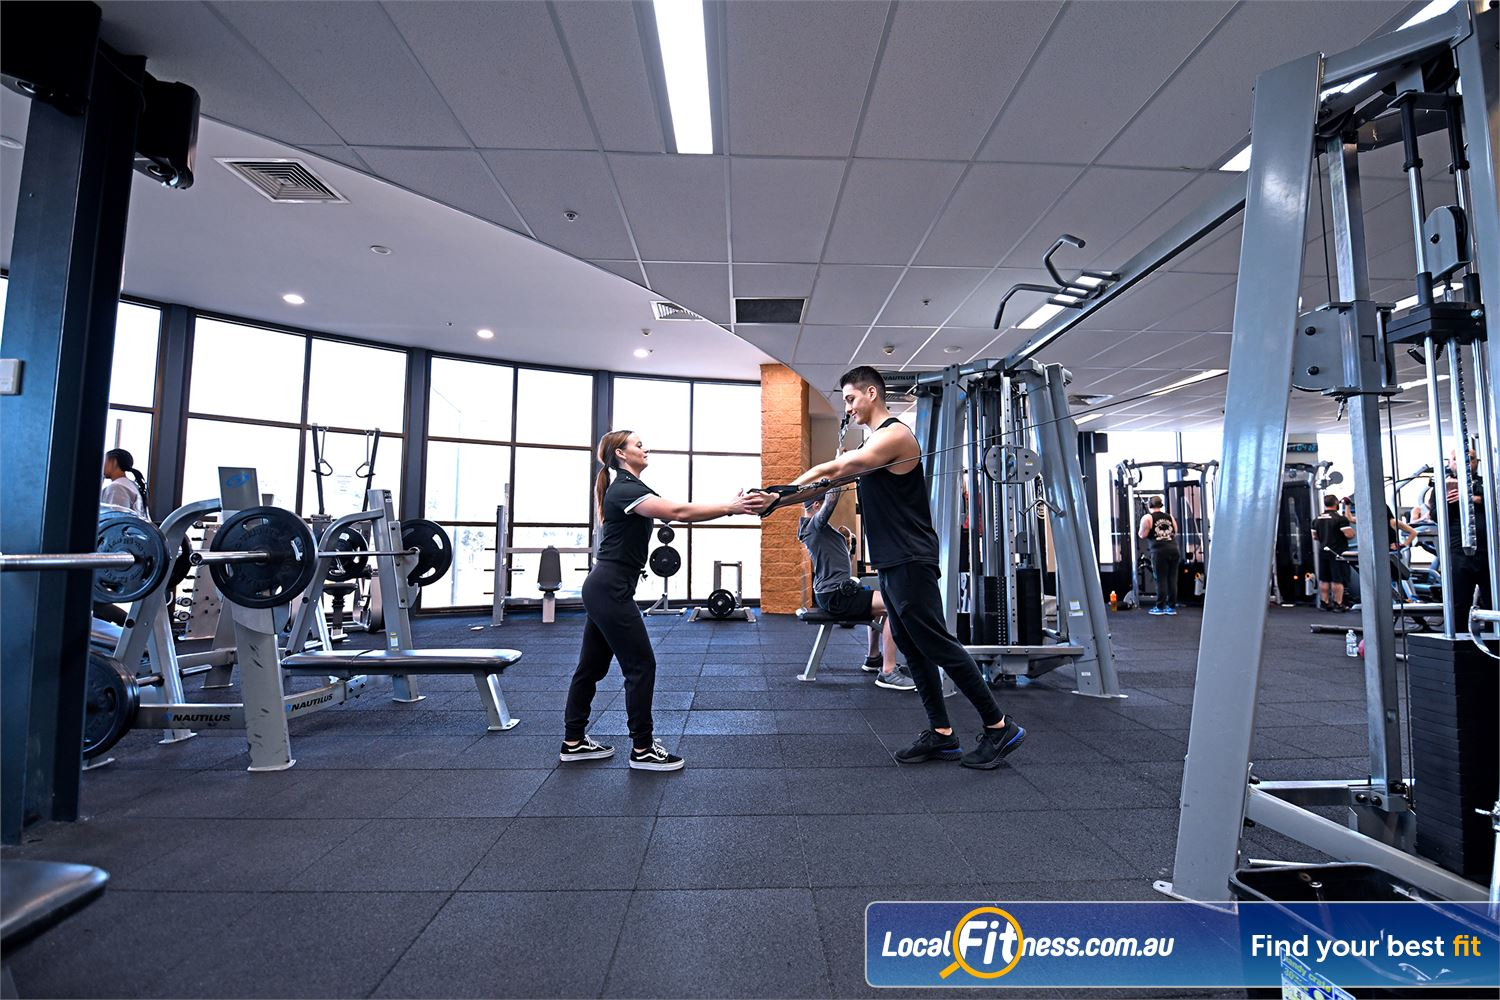 Goodlife Health Clubs Point Cook Our Point Cook gym team can help you with your strength goals.